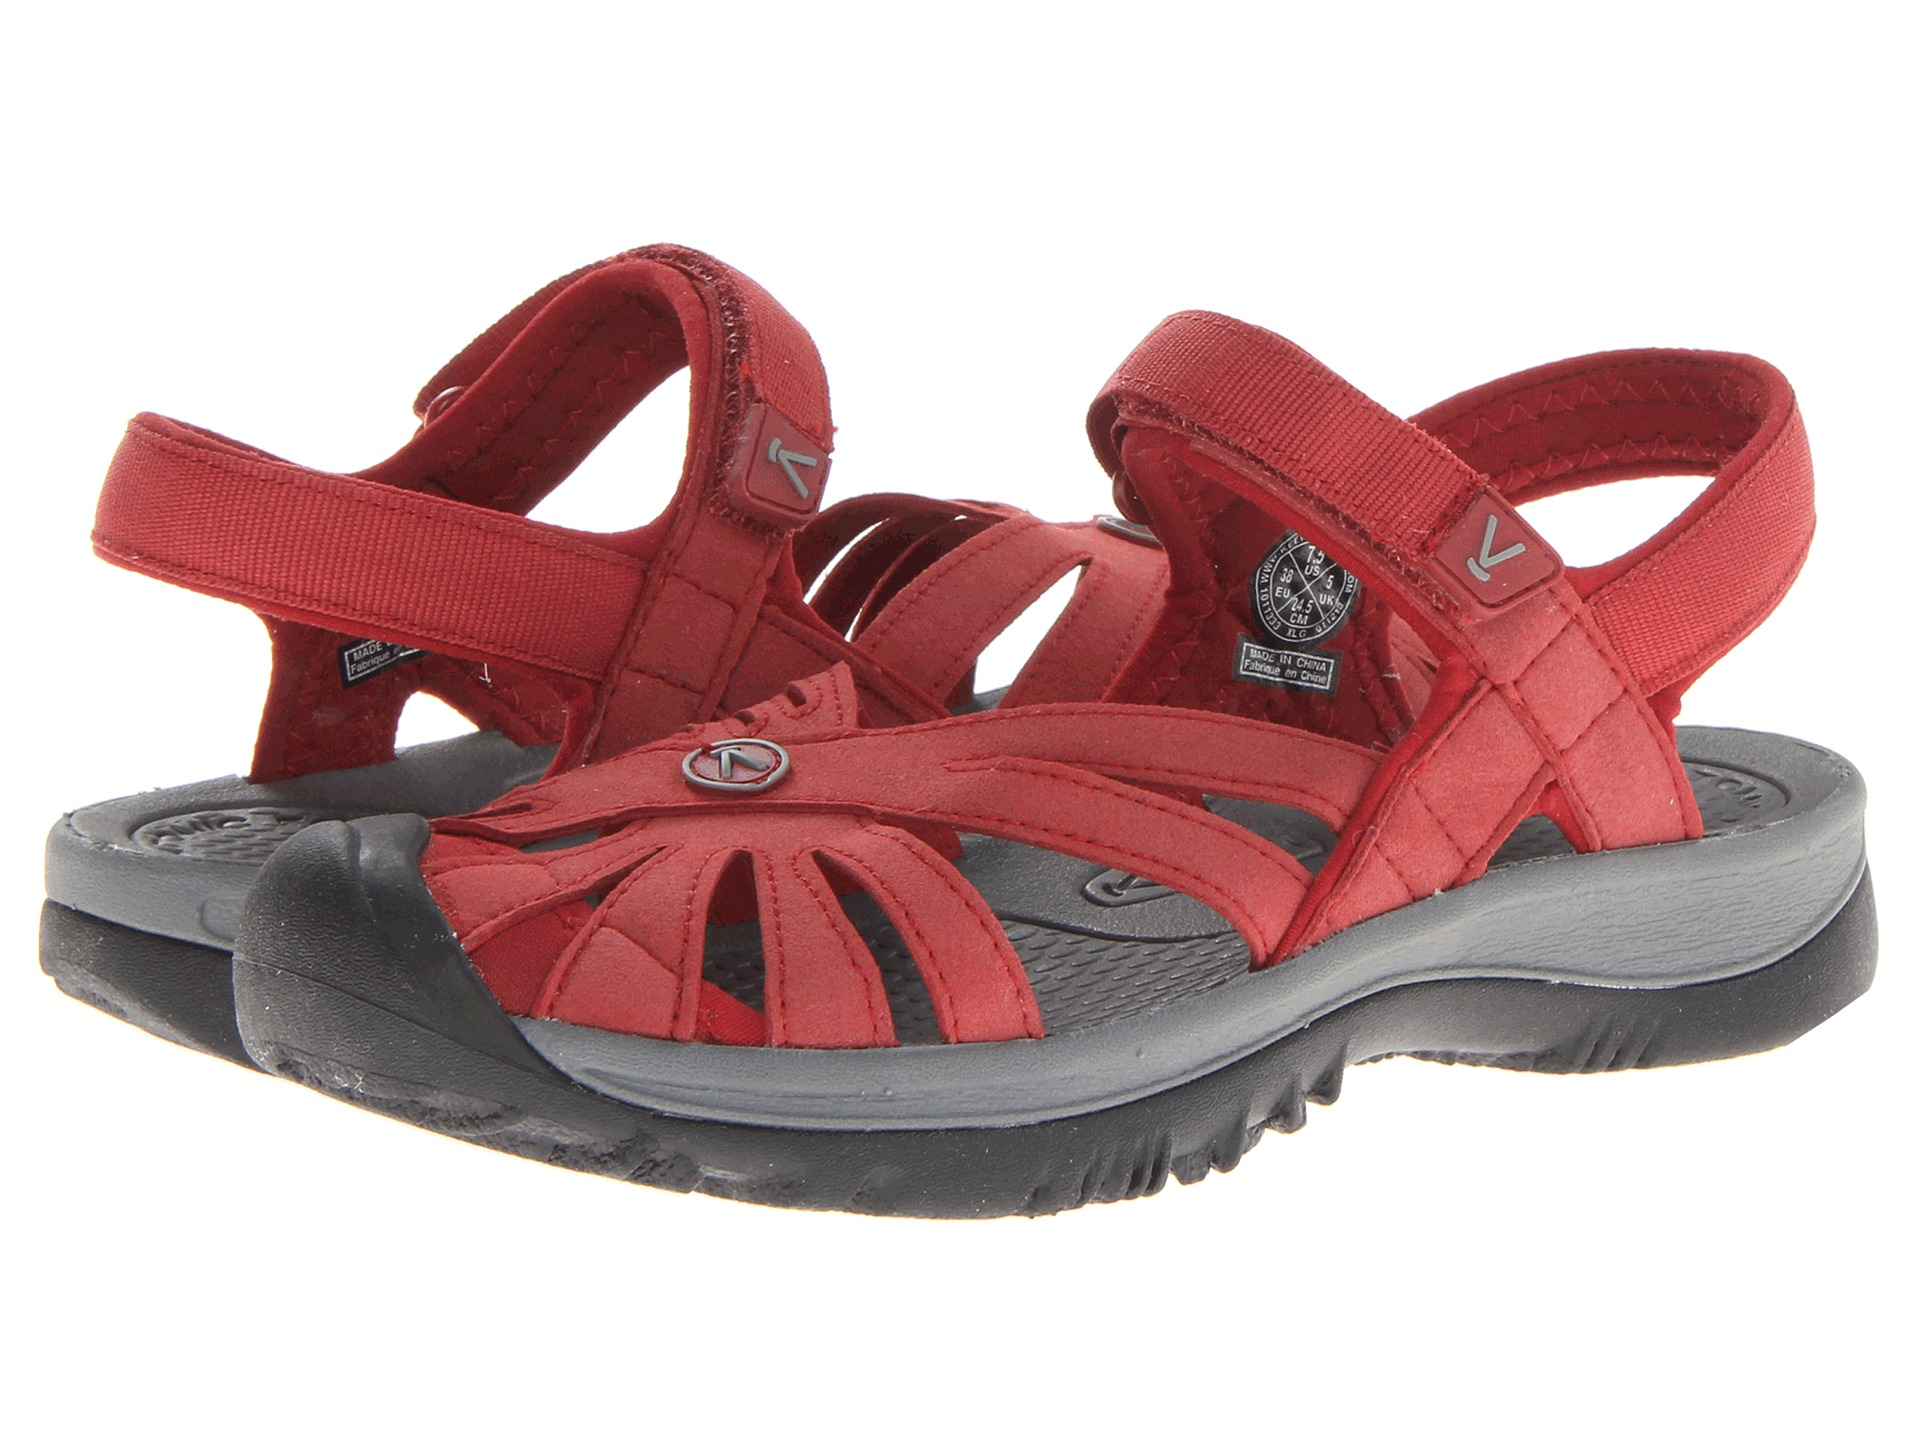 Keen Rose Sandal Zappos Com Free Shipping Both Ways